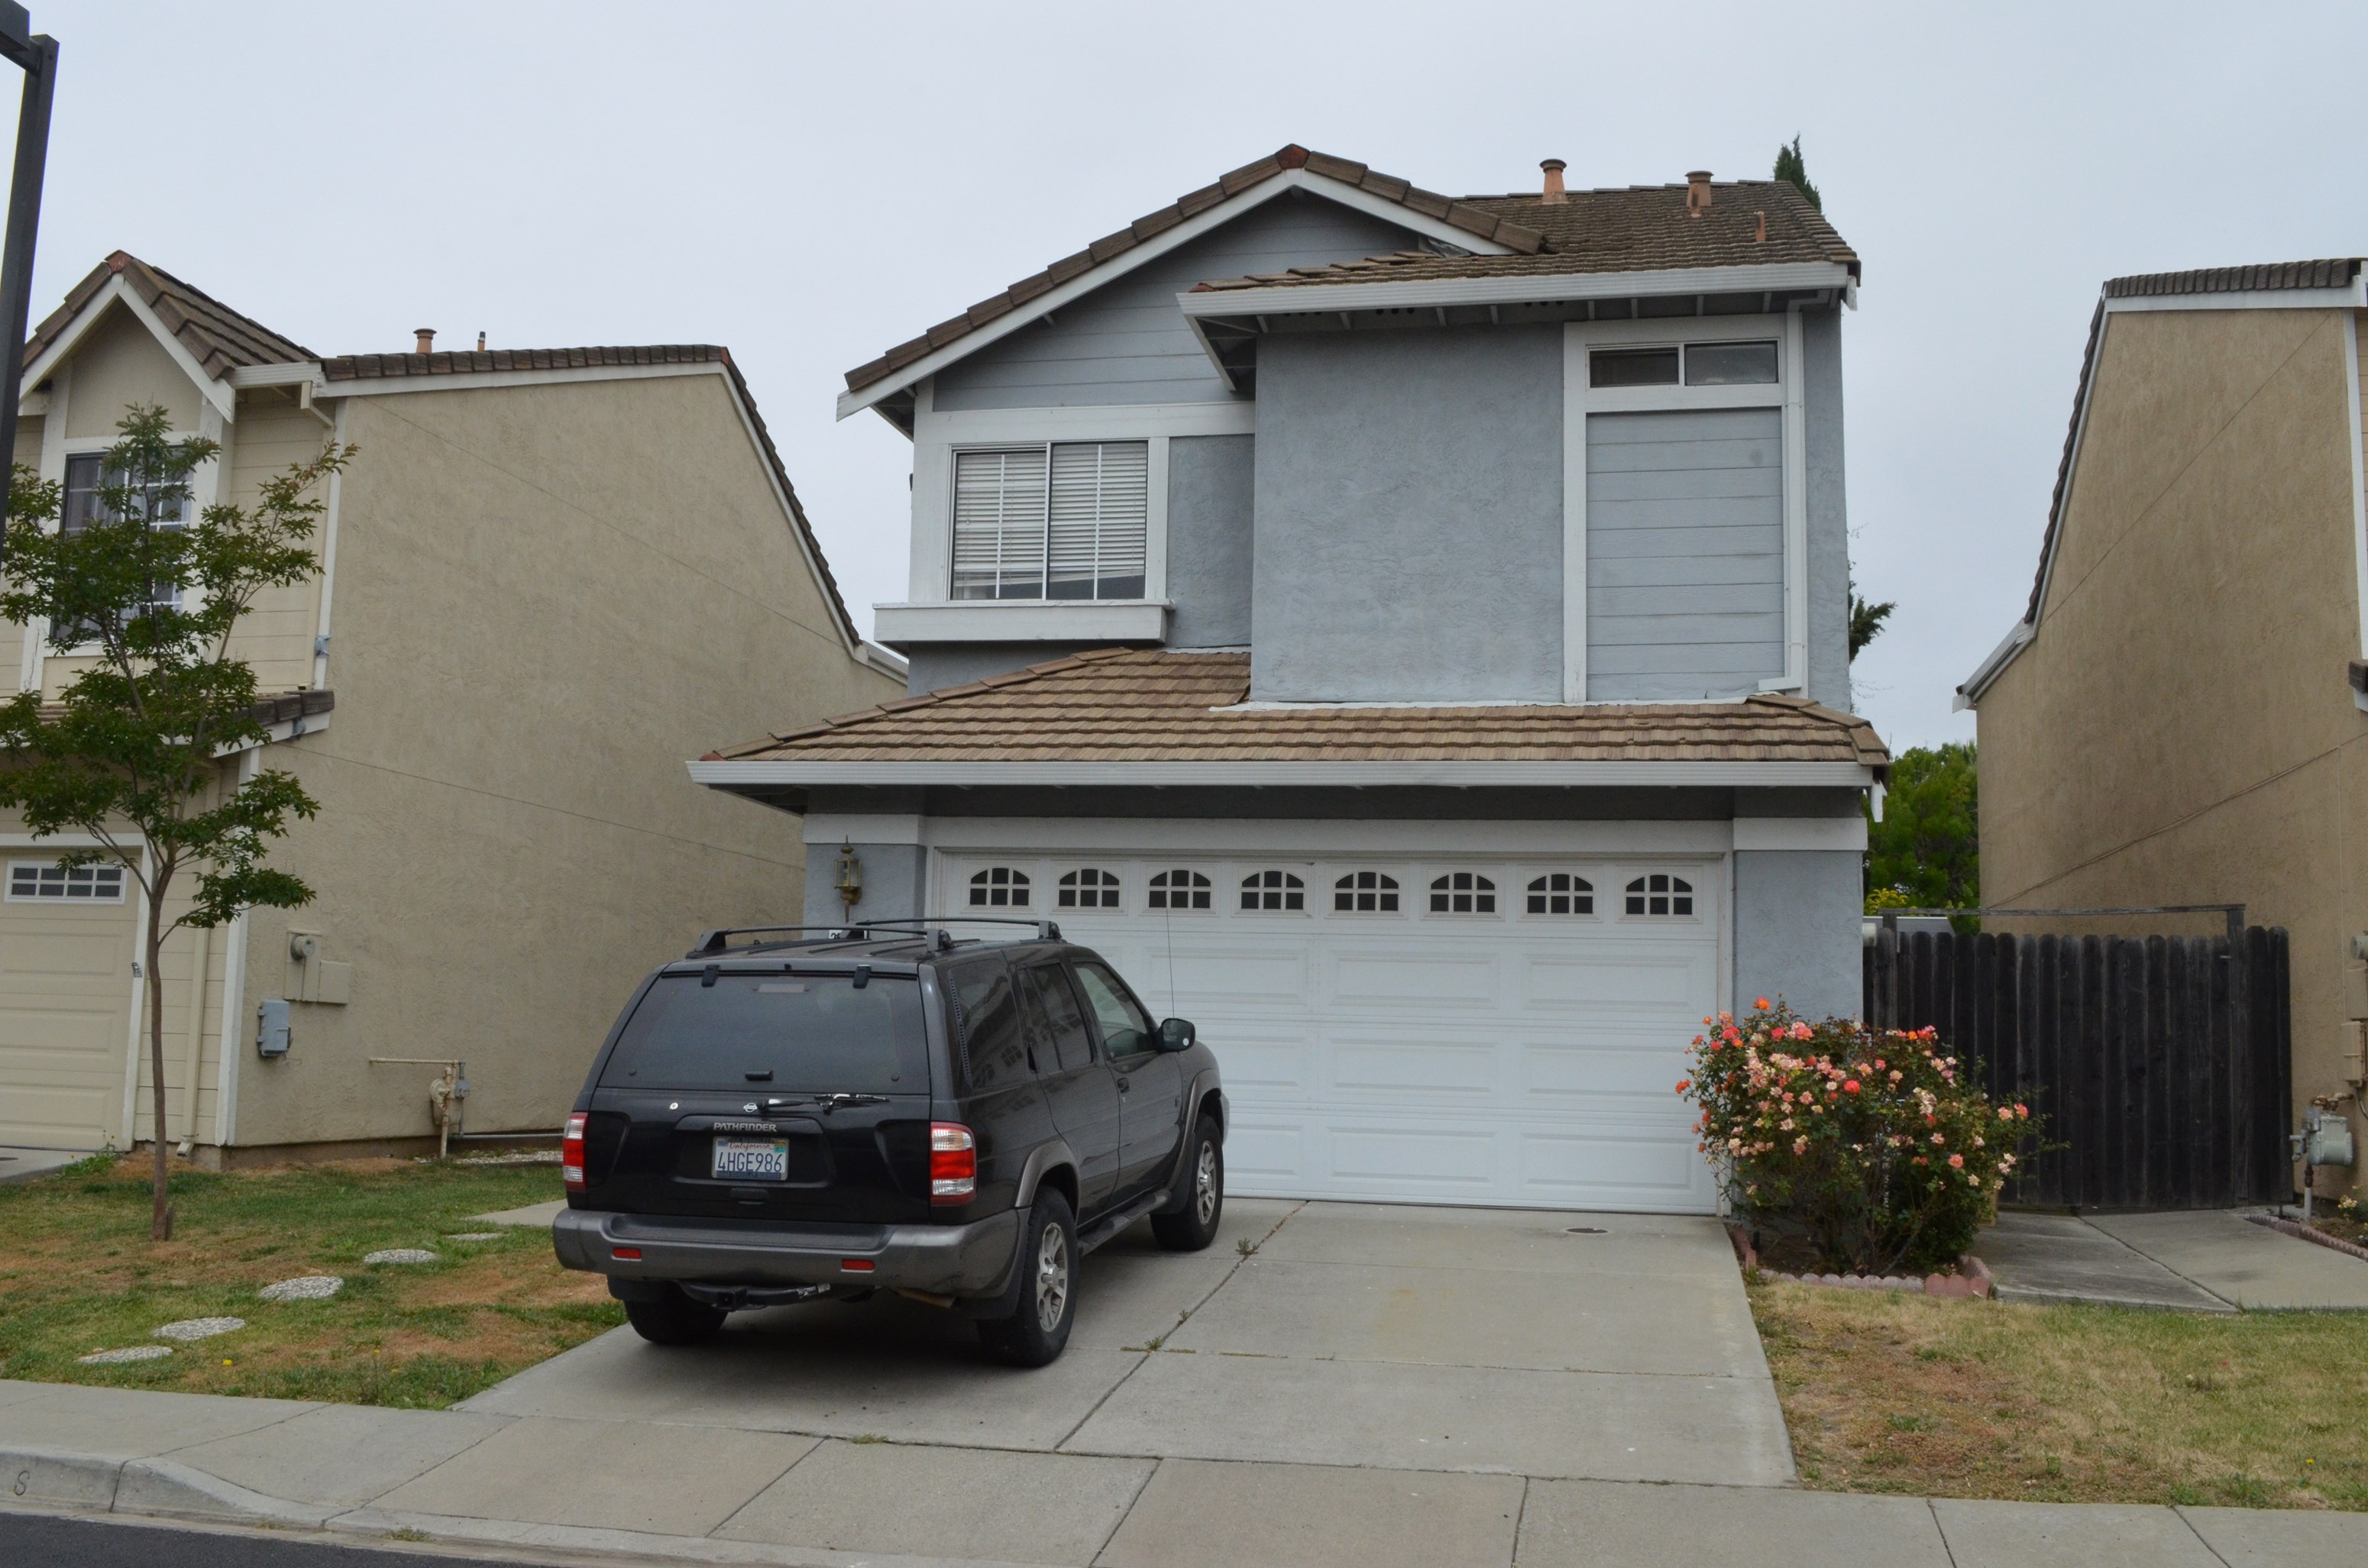 3 Bed 2 5 Bath Single Family House  Niles School. 3 Bedroom House for Rent in Fremont  CA   Three Bedroom Homes for